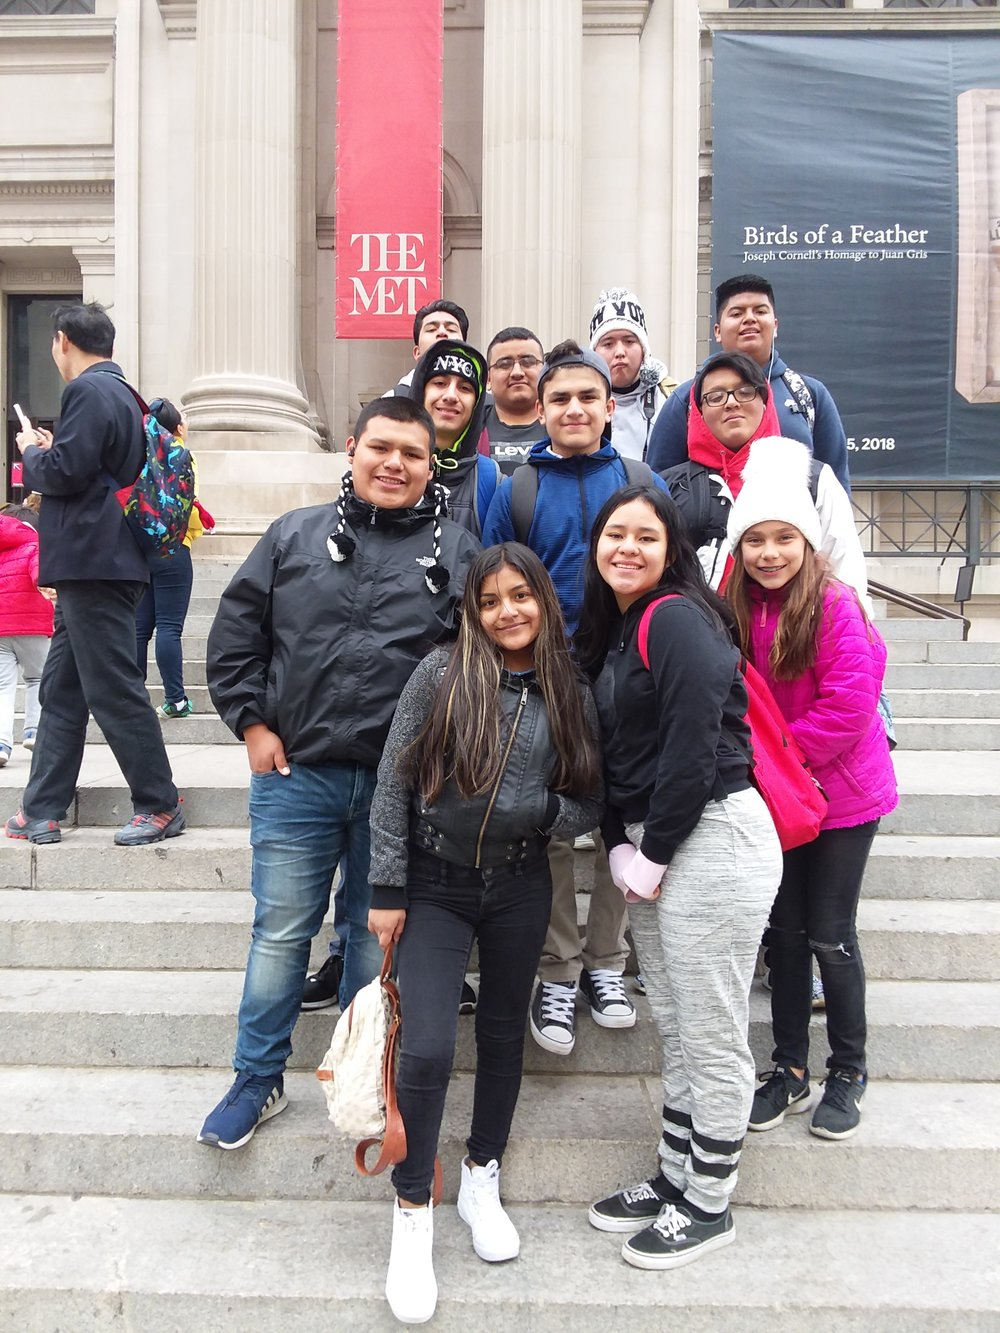 Students (half group) - at the The Met